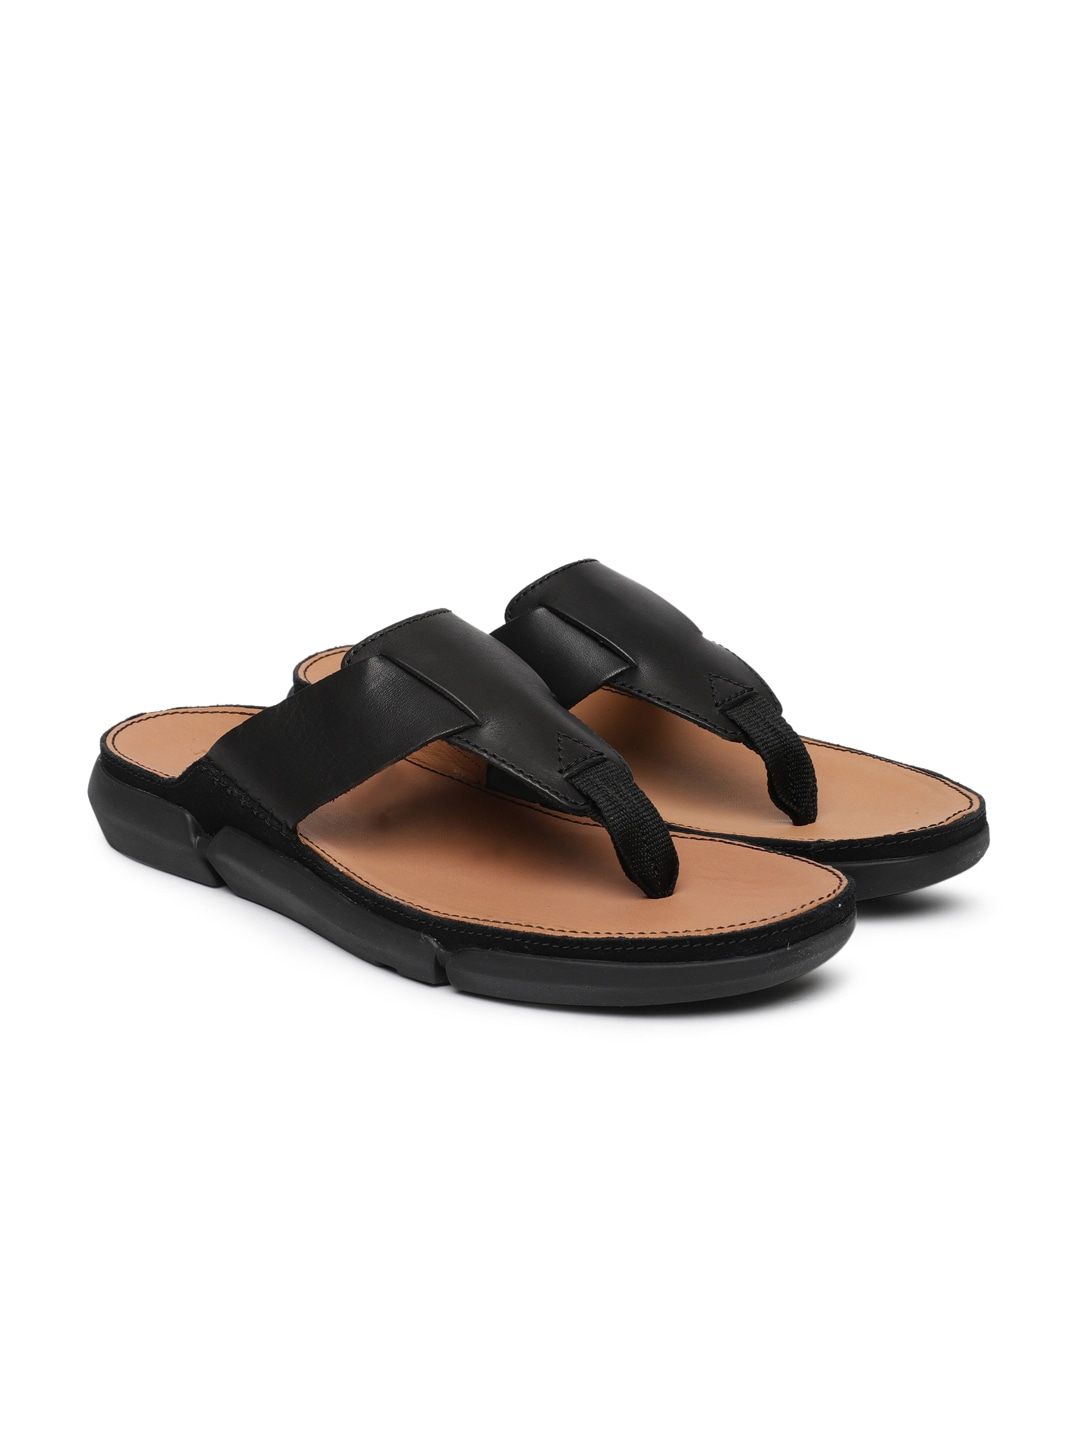 8d6c6252735f56 CLARKS - Exclusive Clarks Shoes Online Store in India - Myntra